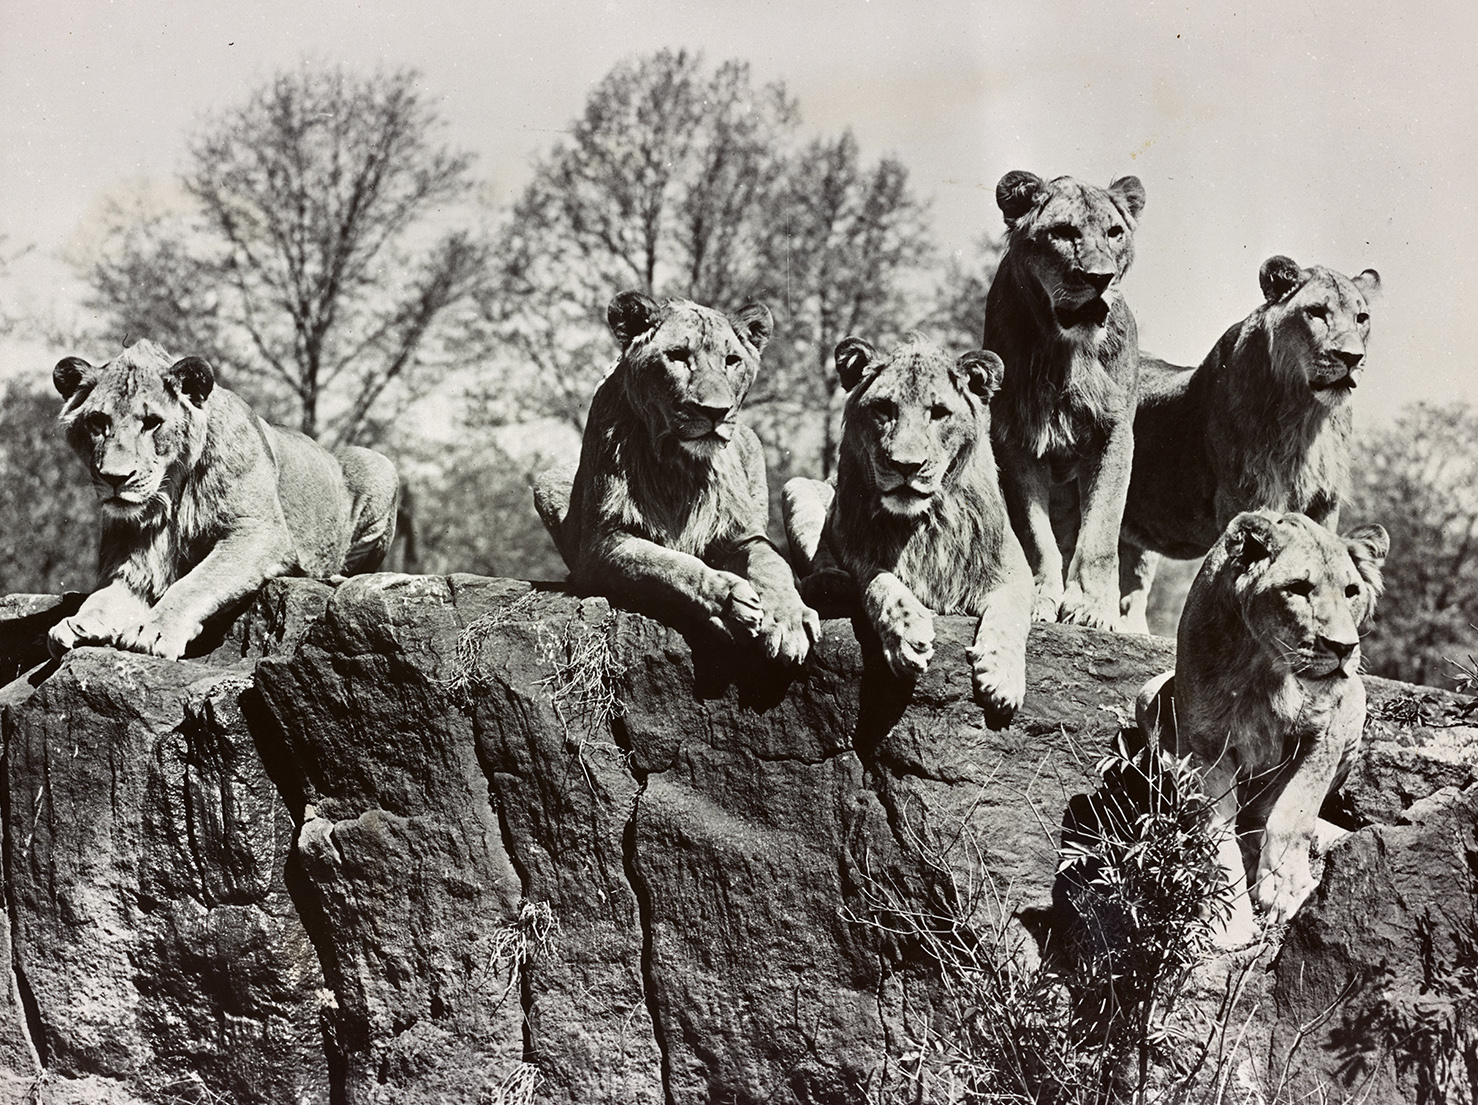 mac_1689: The Bronx Zoo: The African Plains exhibit. Six uncaged lions face viewers across an invisible moat.